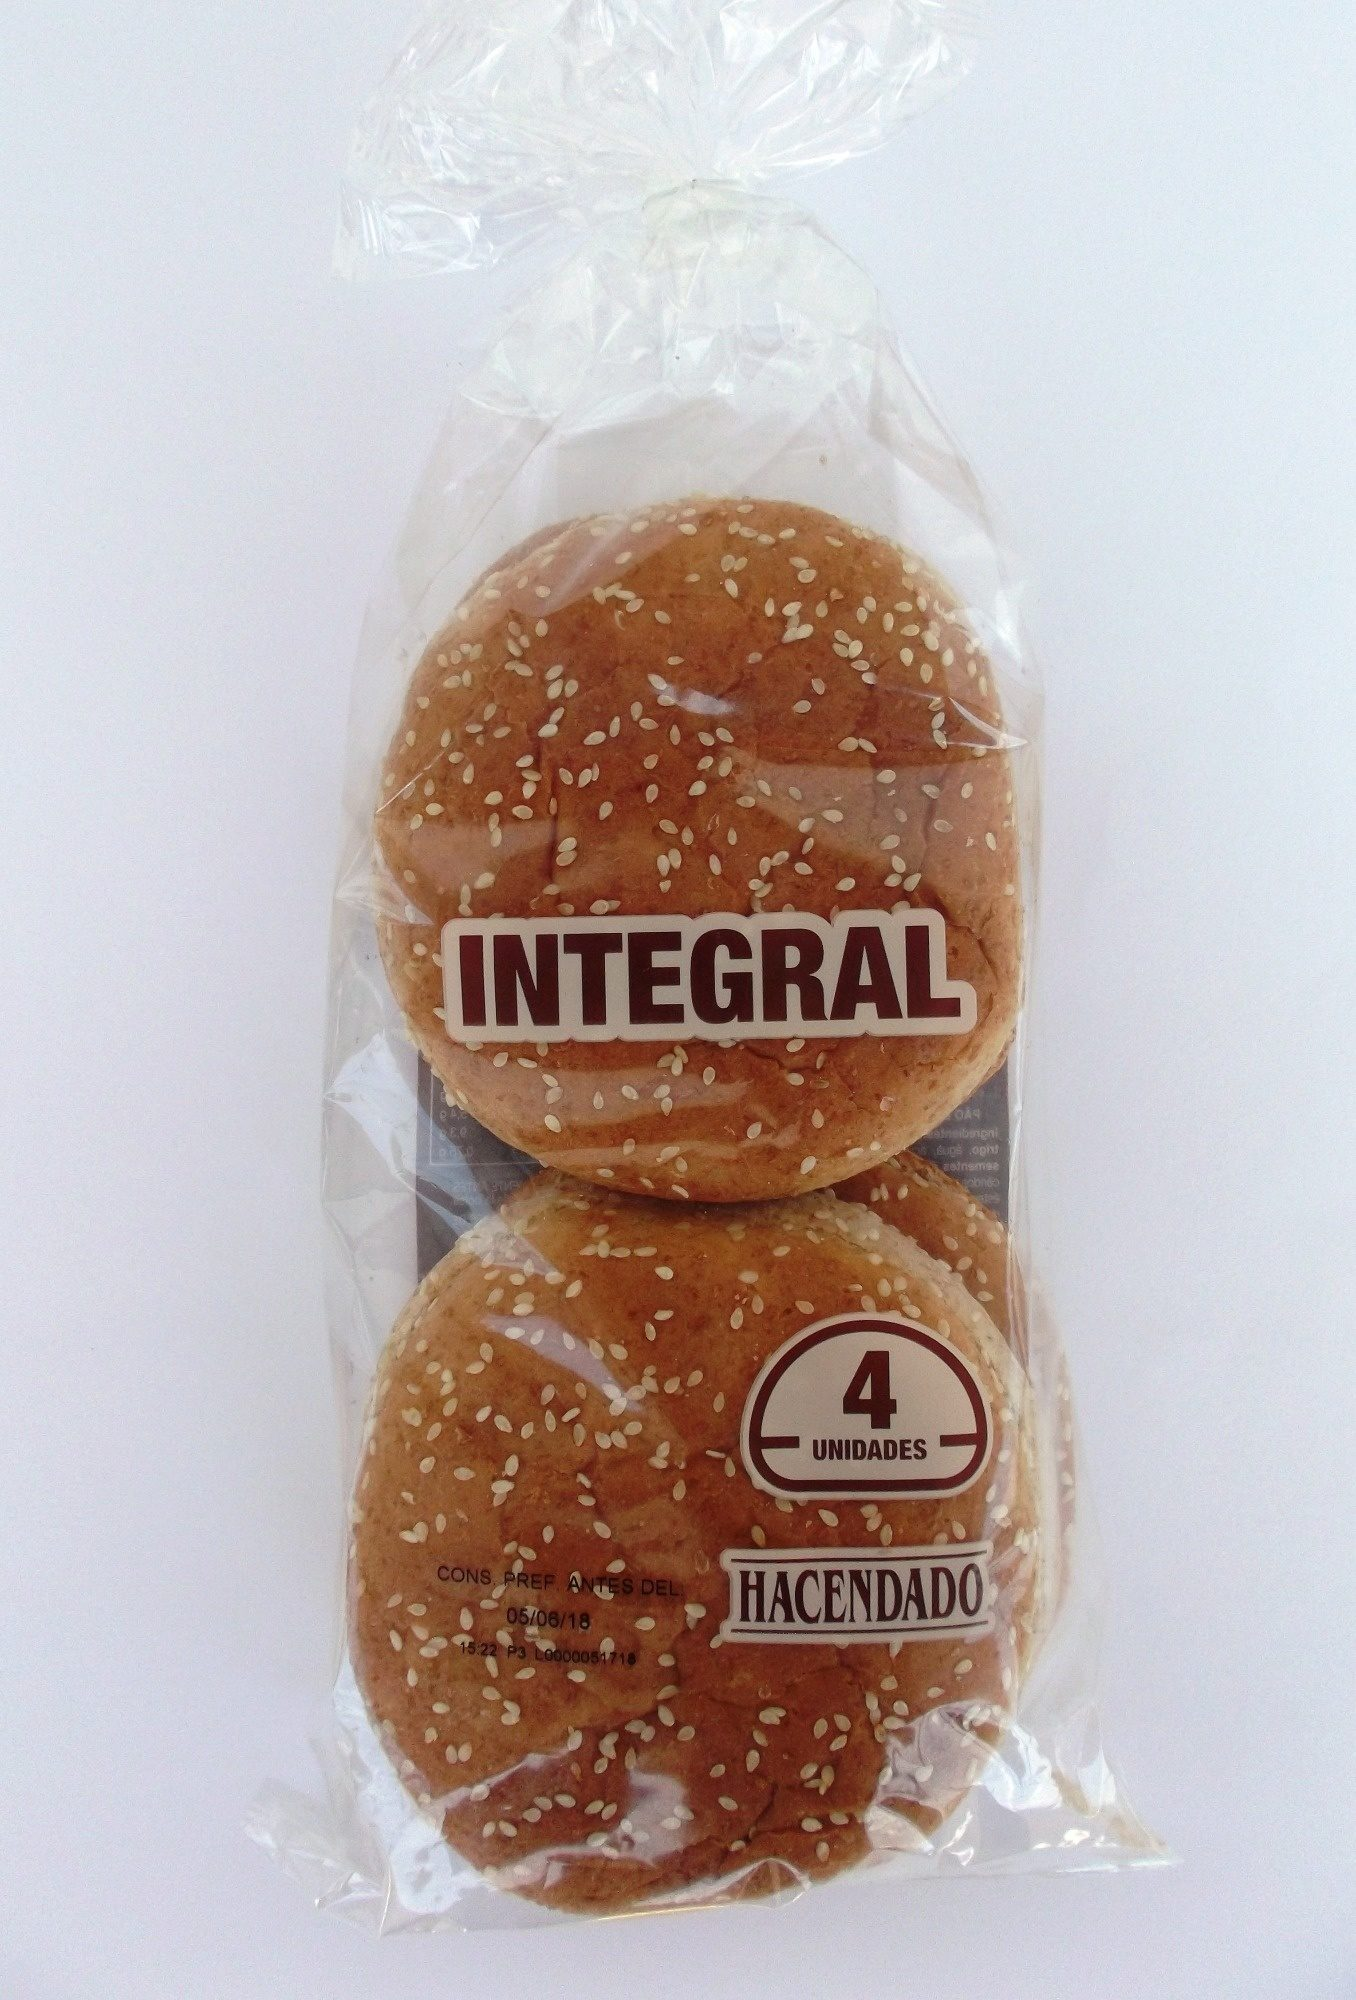 INTEGRAL - Producto